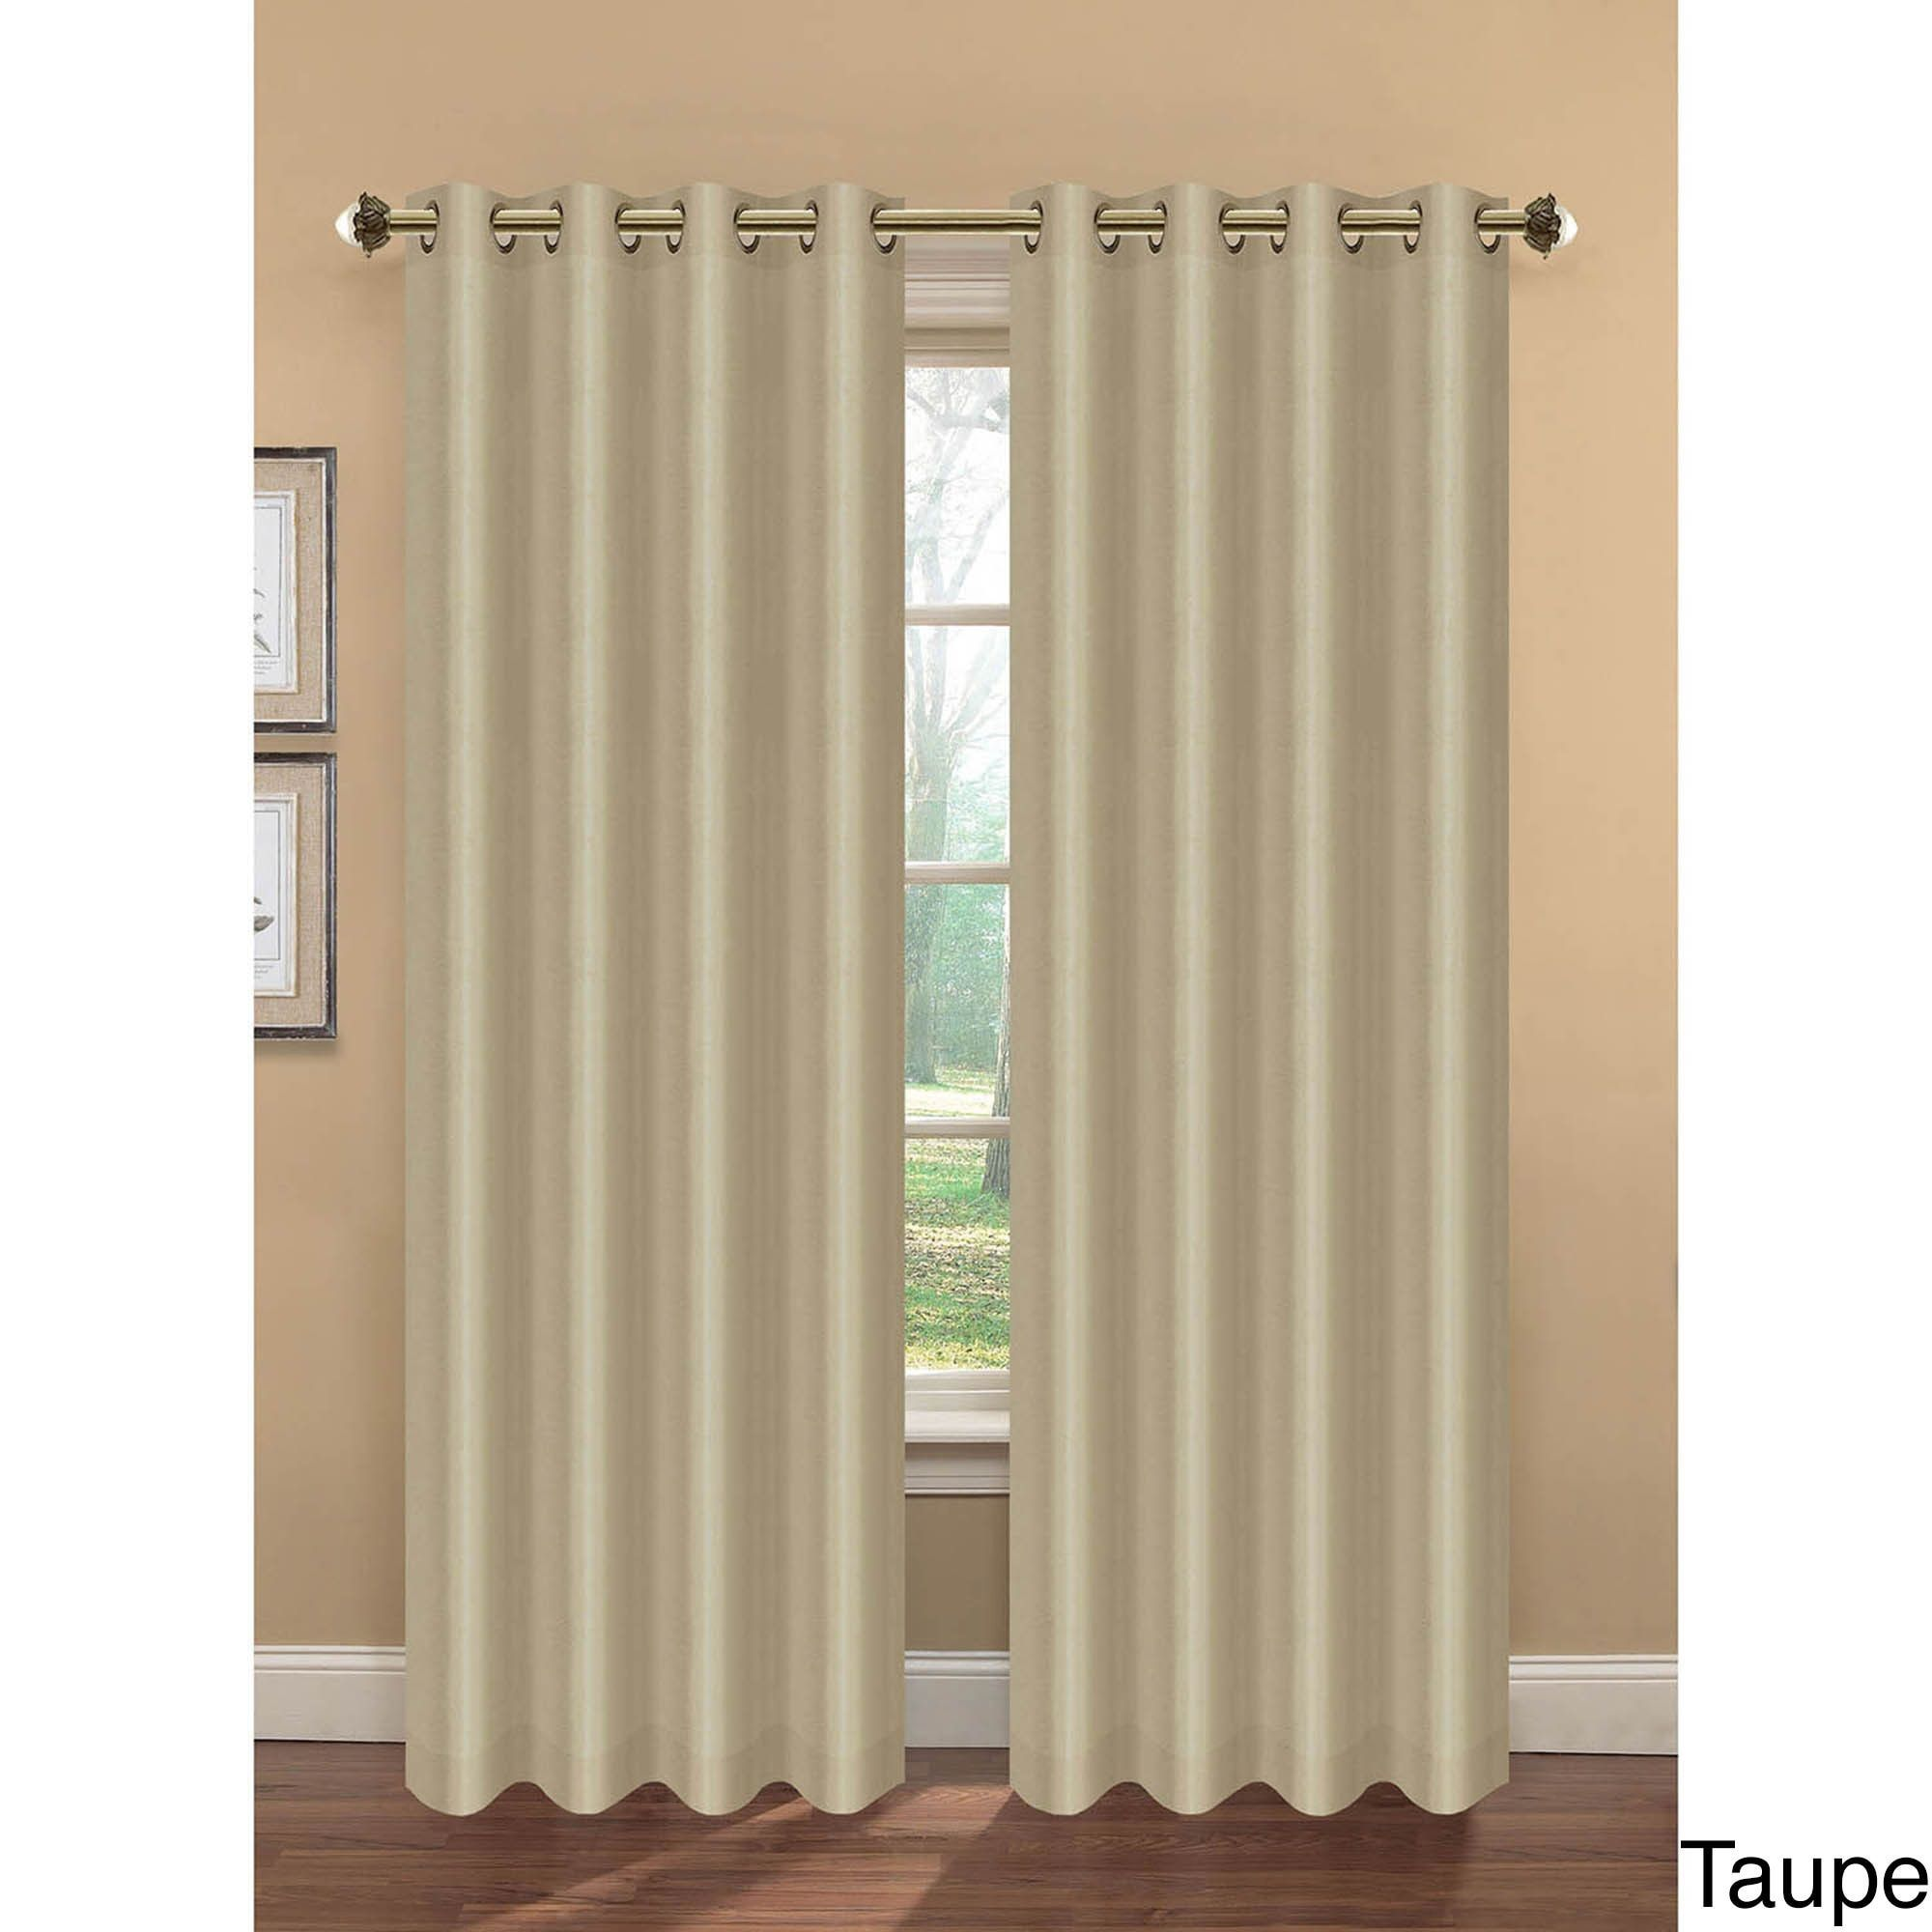 tips residence eyelet pertaining white to silk design applied enjoyable curtains lined fully your ring faux drapes top